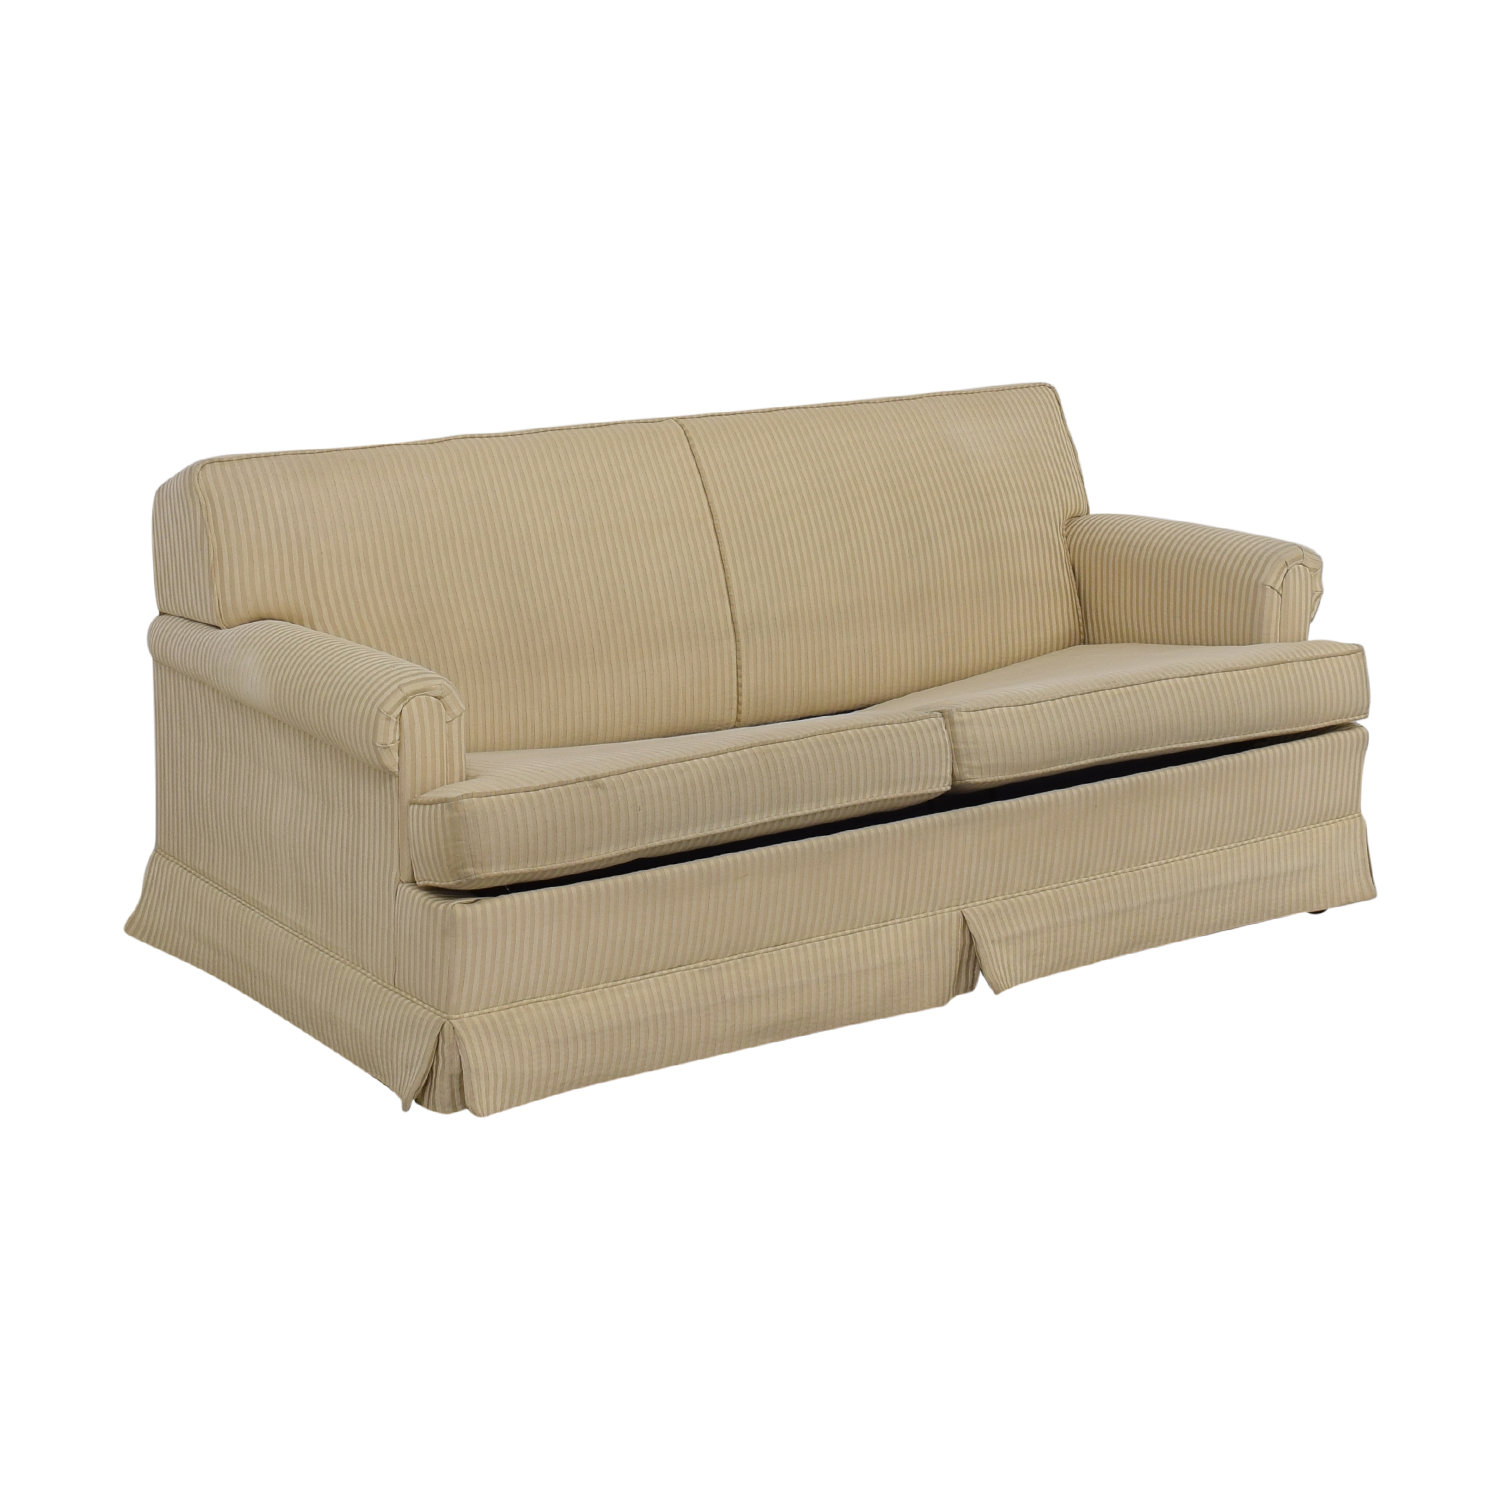 - 90% OFF - Stearns & Foster Stearns & Foster Two-Cushion Sleeper